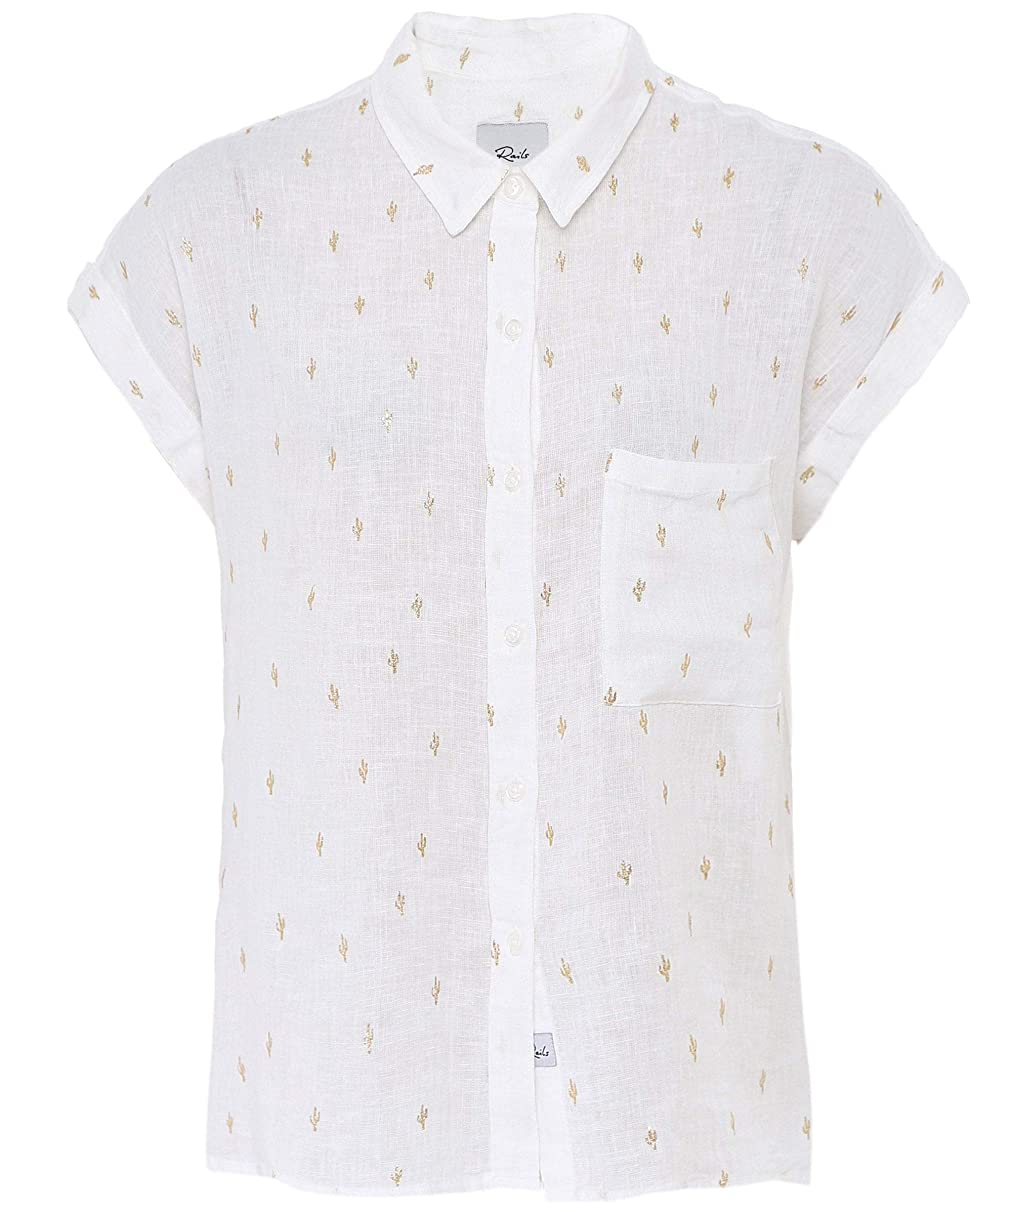 Rails Women's Linen Blend Whitney Golden Cactus Shirt White